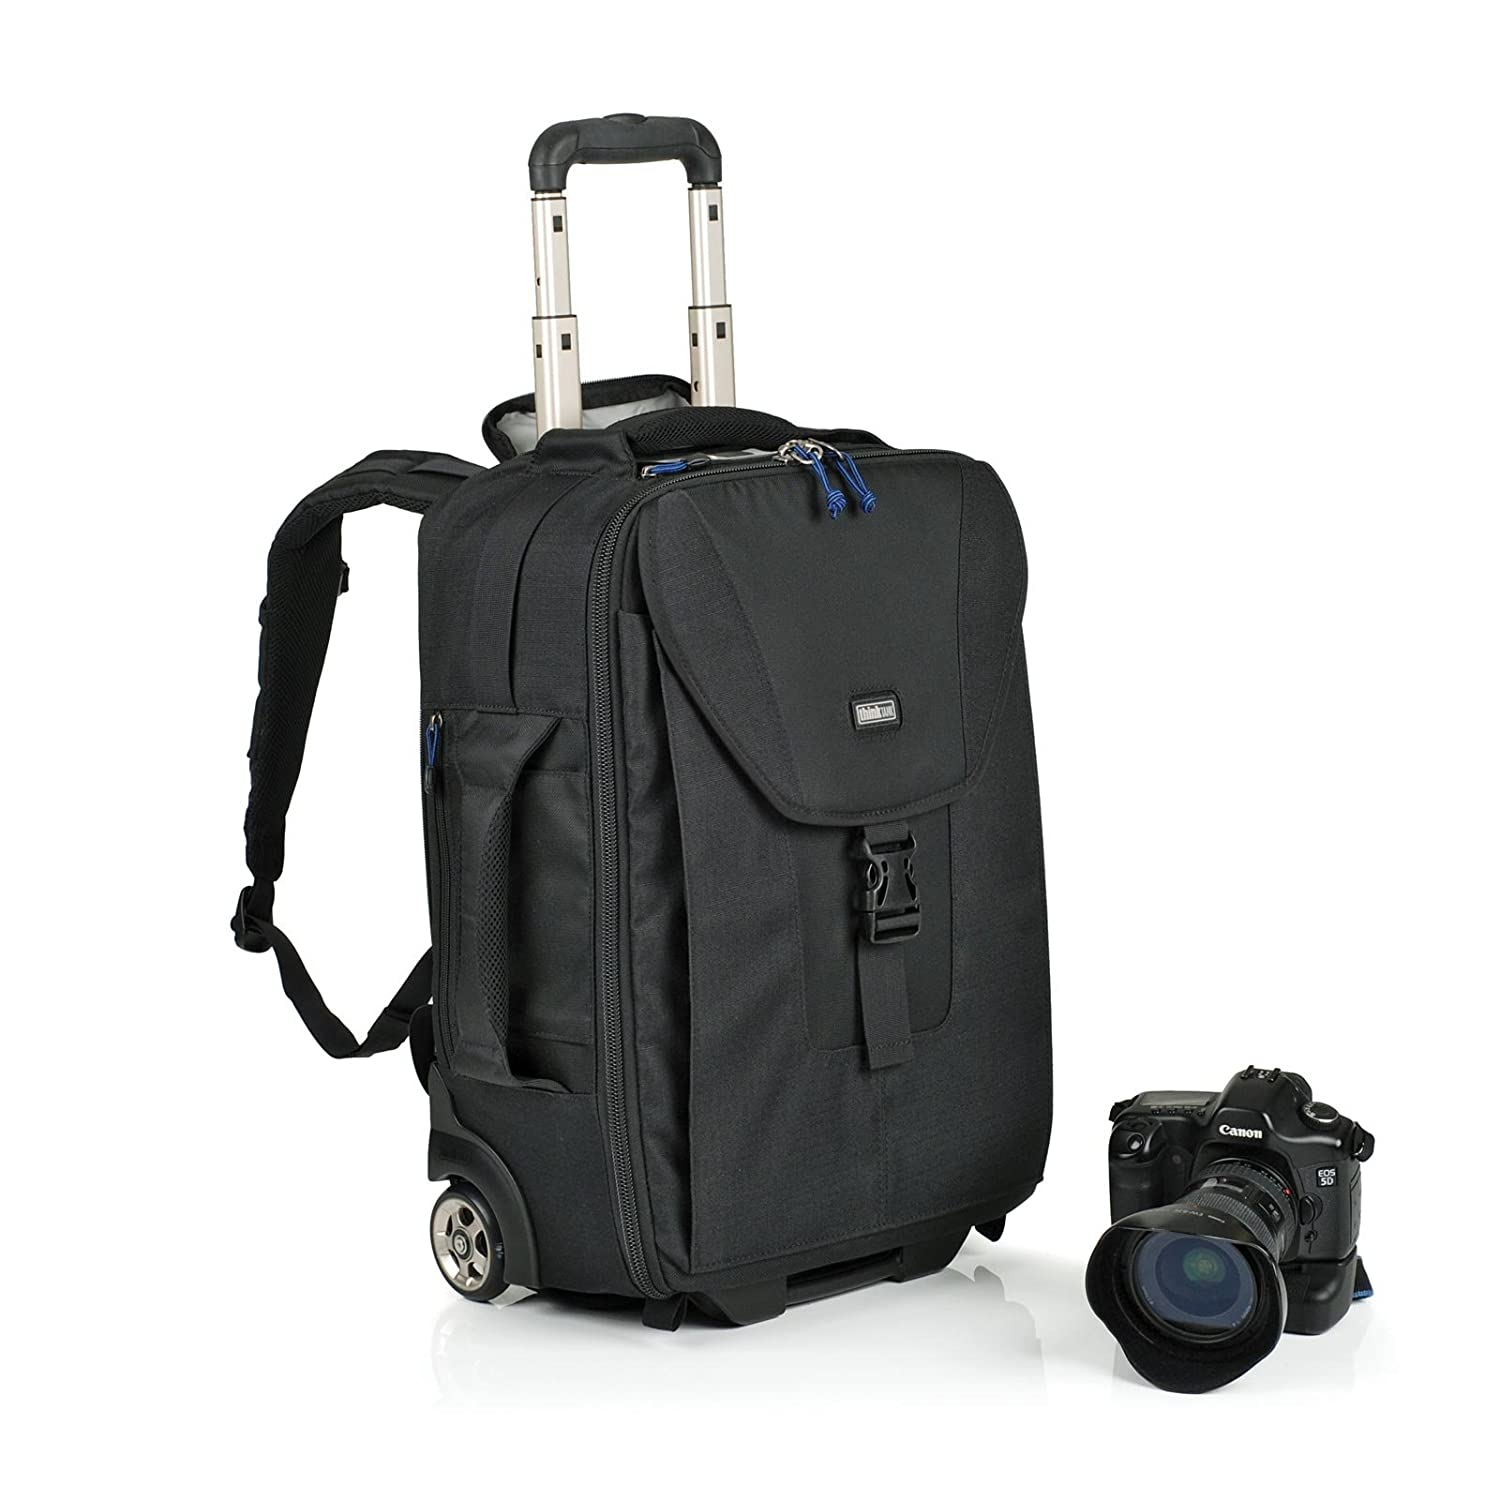 Amazon.com : Think Tank Airport Takeoff Rolling Backpack : Camera ...